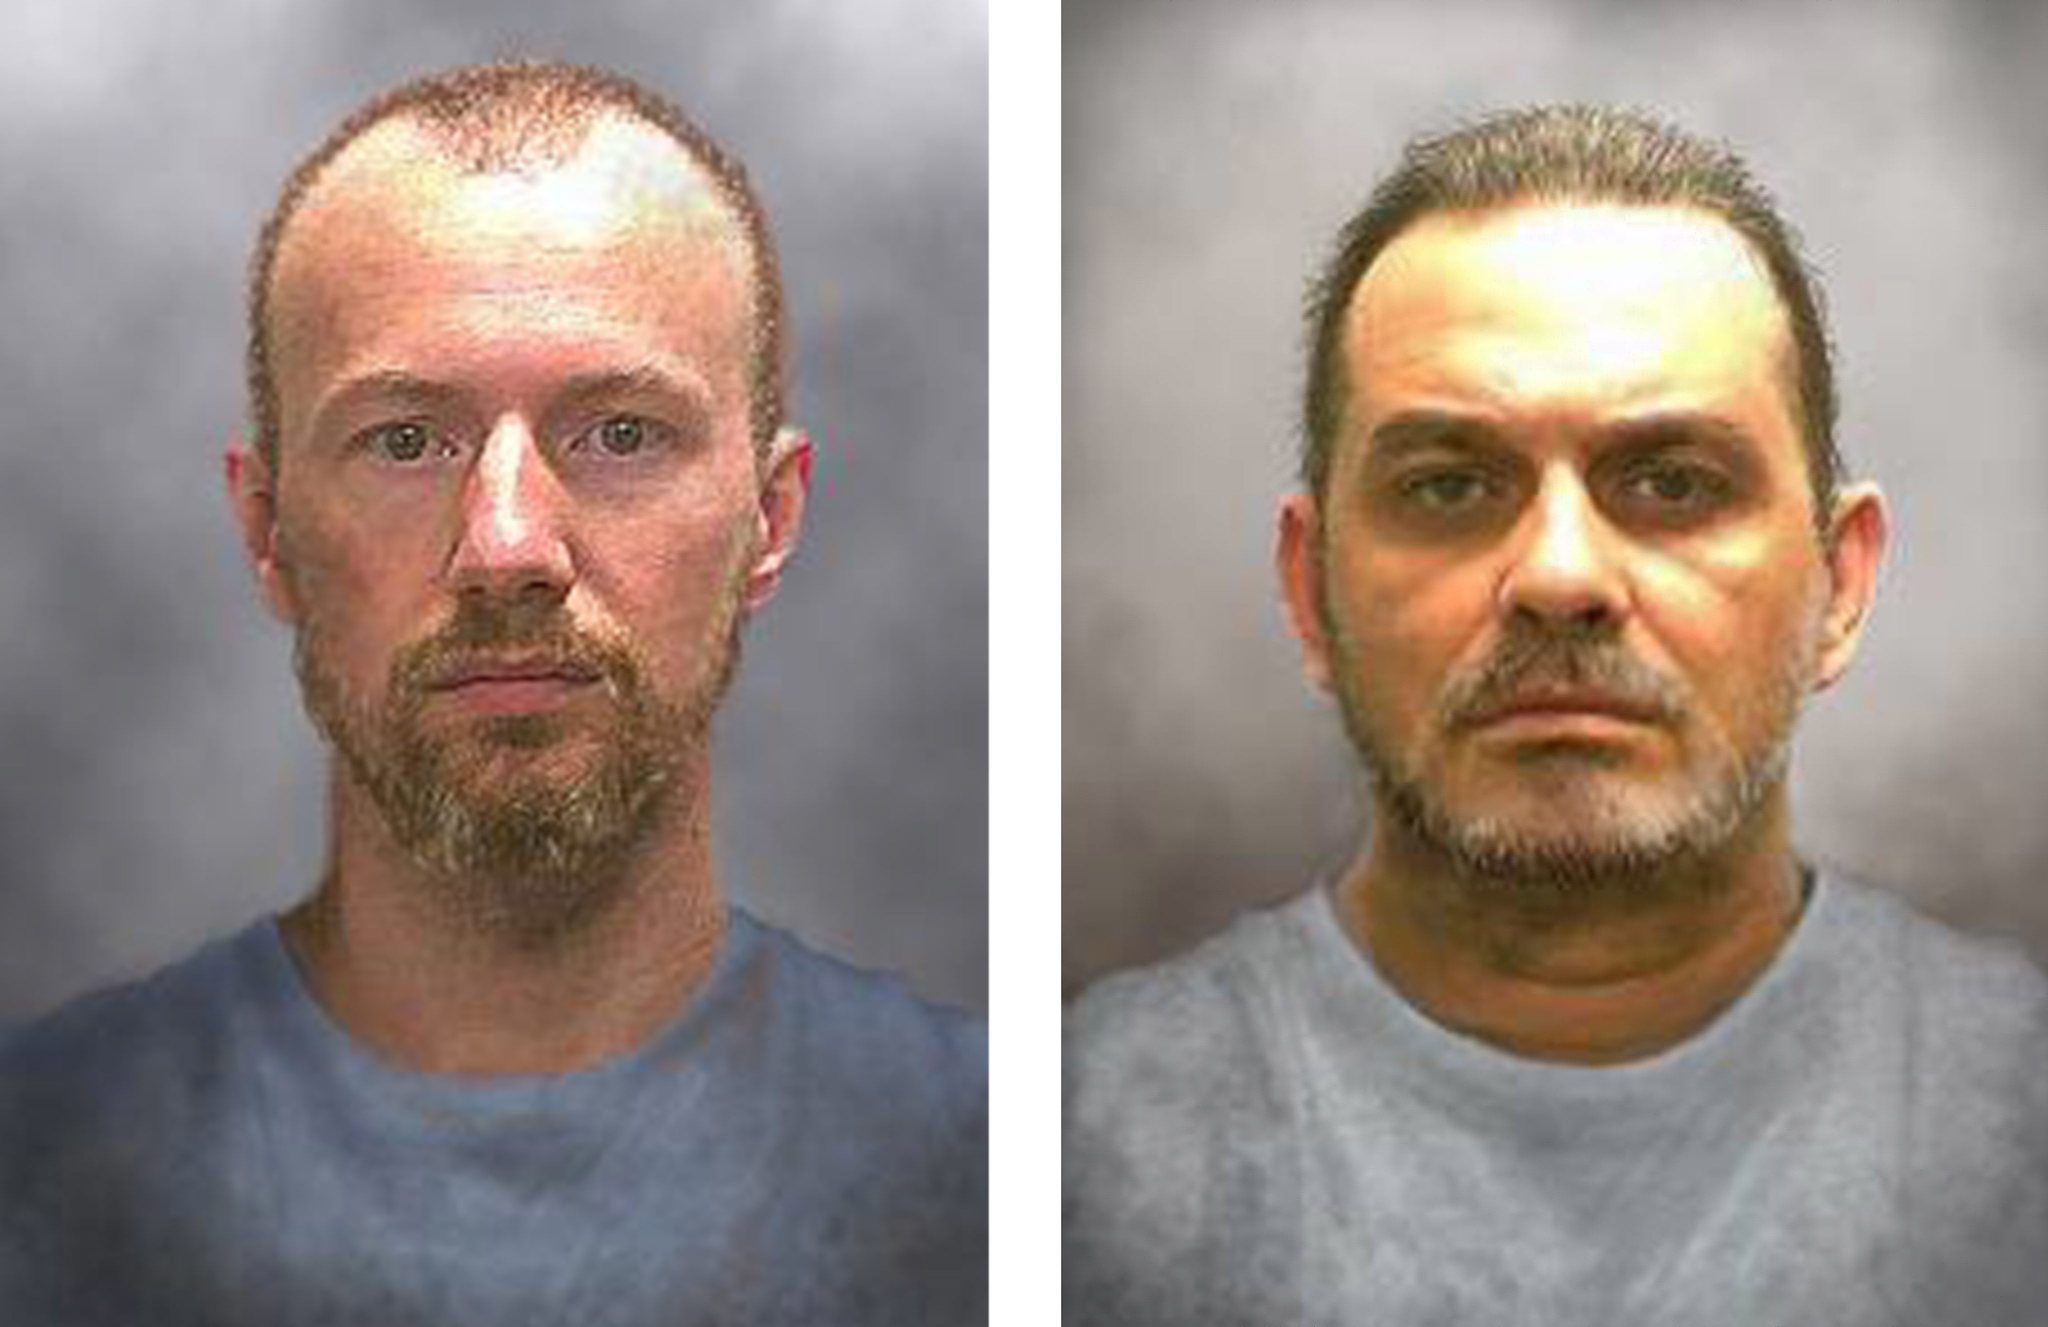 Police check out new lead on escaped New York prisoners